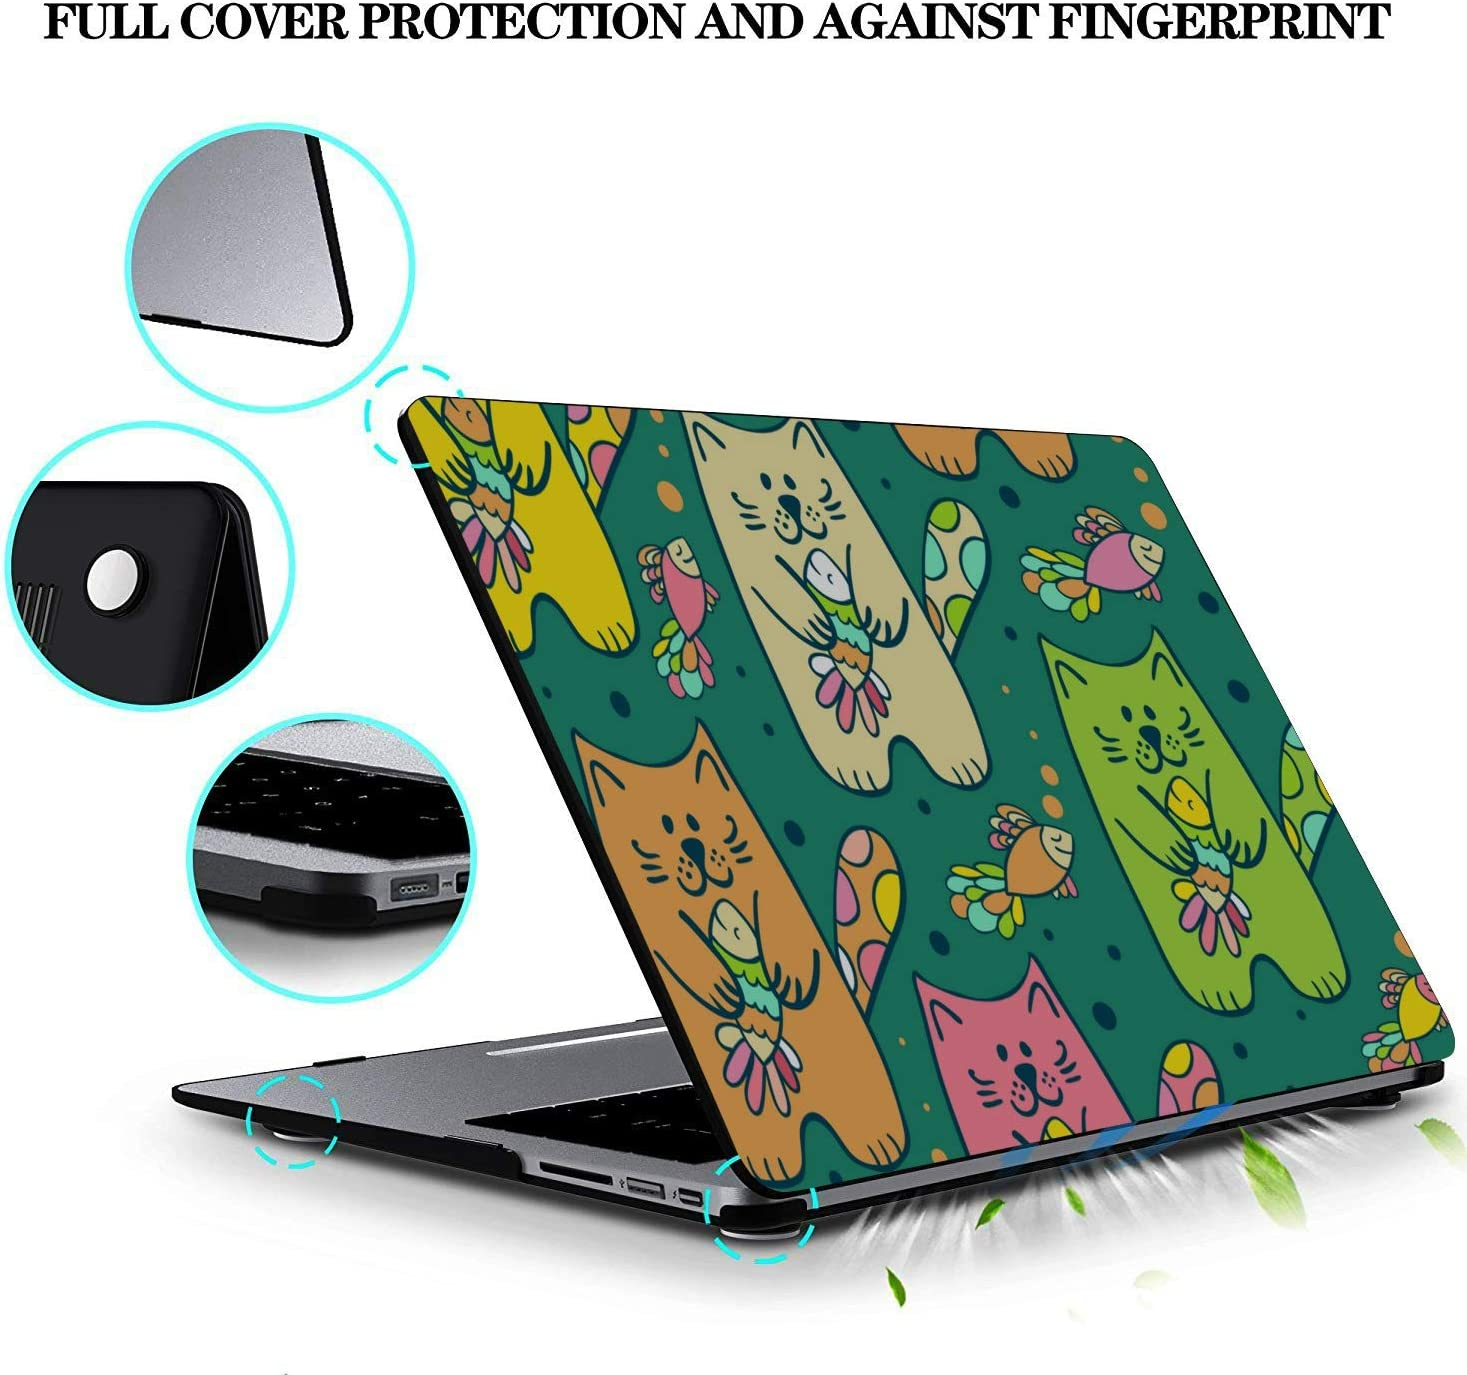 Air Case Cat Eating Fish Simple Plastic Hard Shell Compatible Mac Air 11 Pro 13 15 MacBook Pro Case 2018 Protection for MacBook 2016-2019 Version